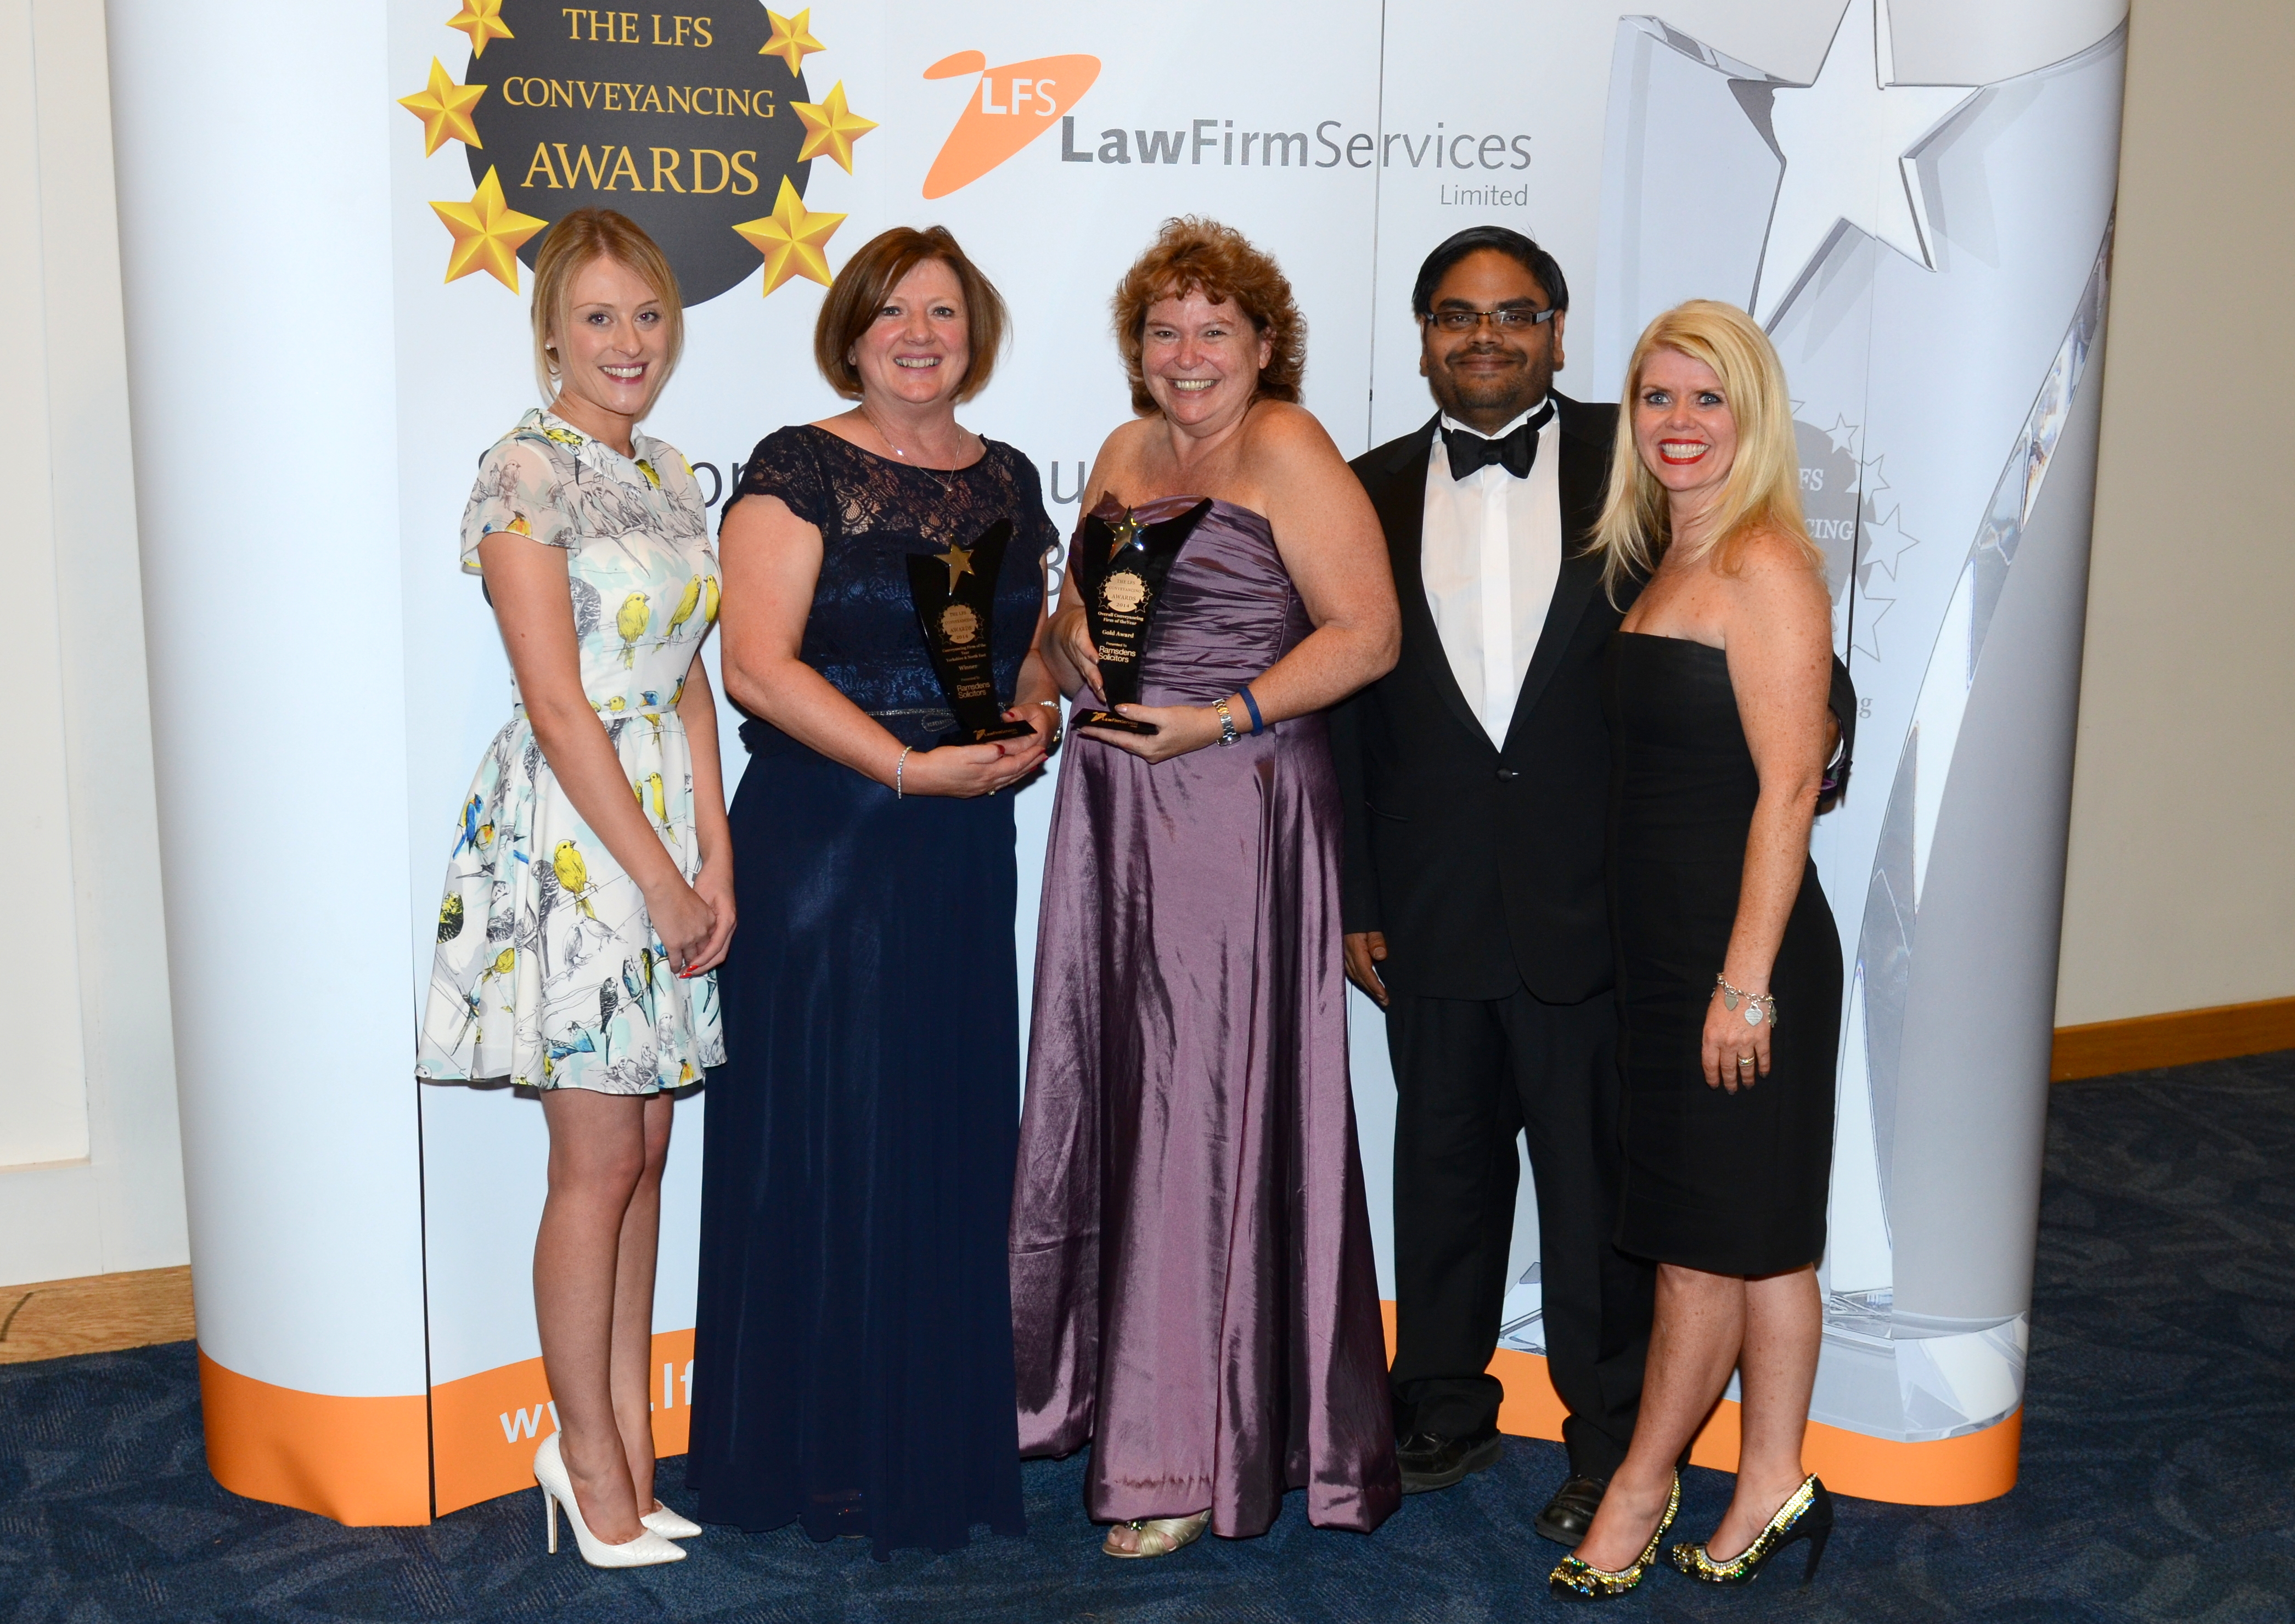 Karen James, Partner at Ramsdens - Overall Conveyancer of the Year & Yorkshire and North East Region winners